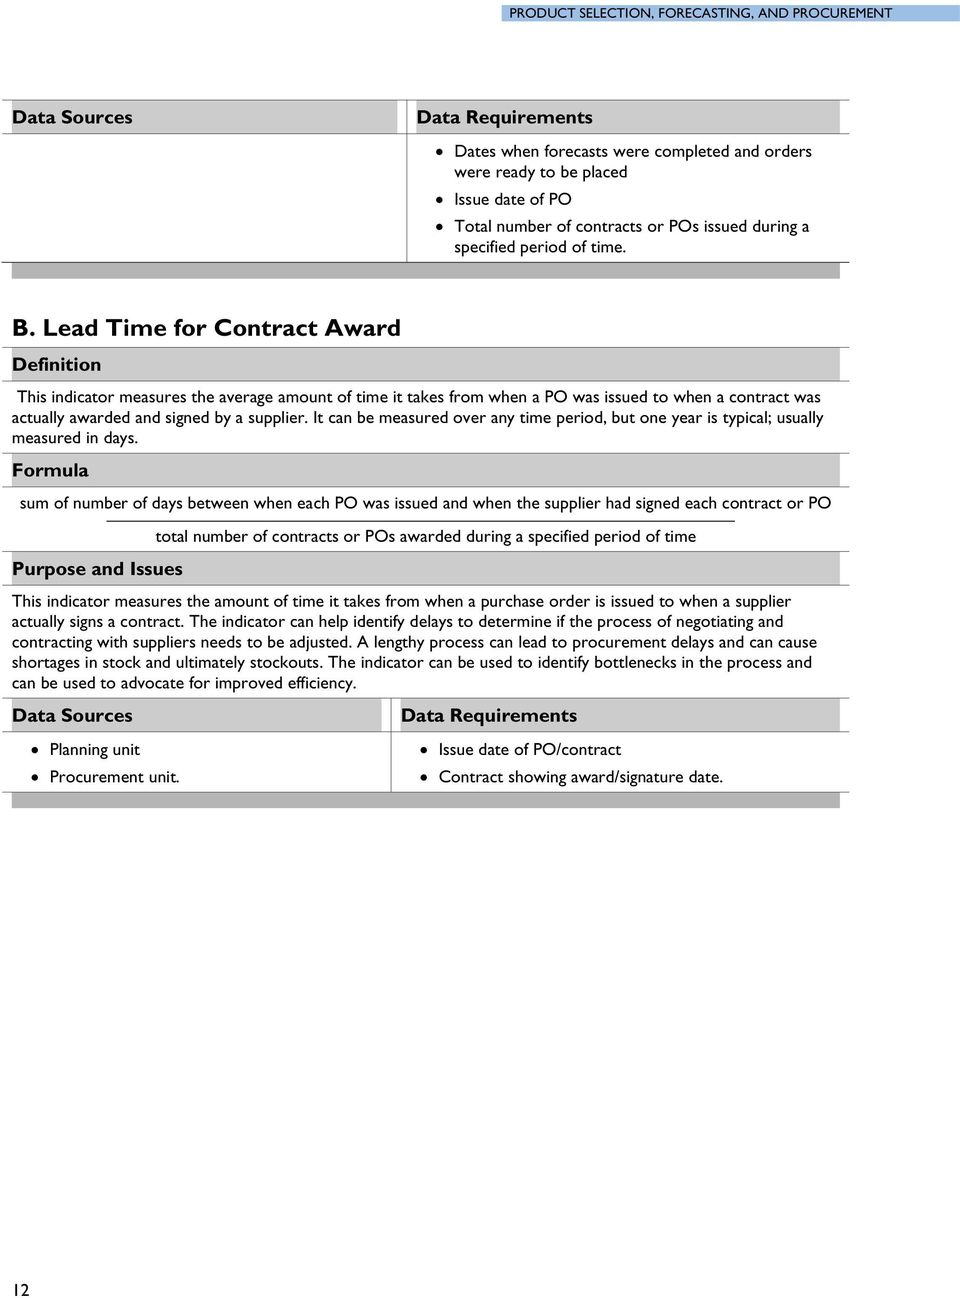 Lead Time for Contract Award This indicator measures the average amount of time it takes from when a PO was issued to when a contract was actually awarded and signed by a supplier.